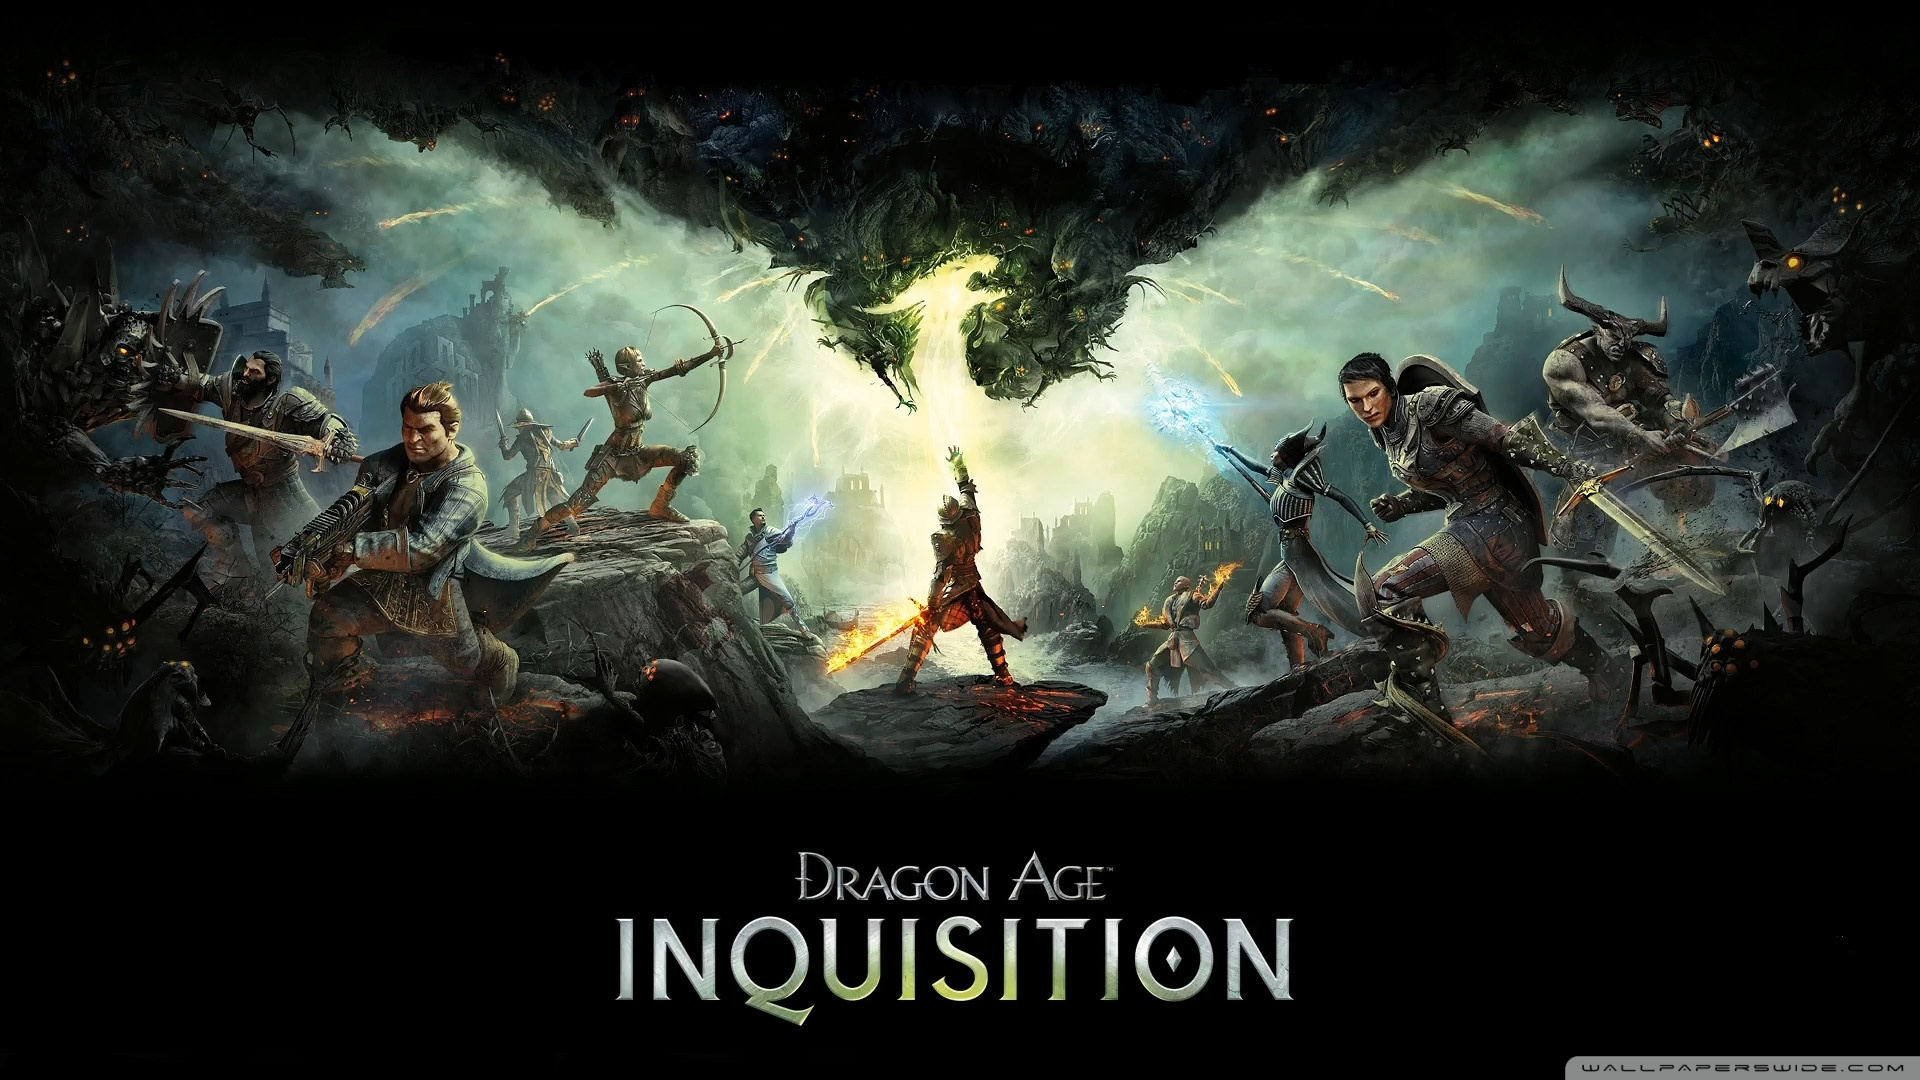 dragon age inquisition ❤ 4k hd desktop wallpaper for 4k ultra hd tv